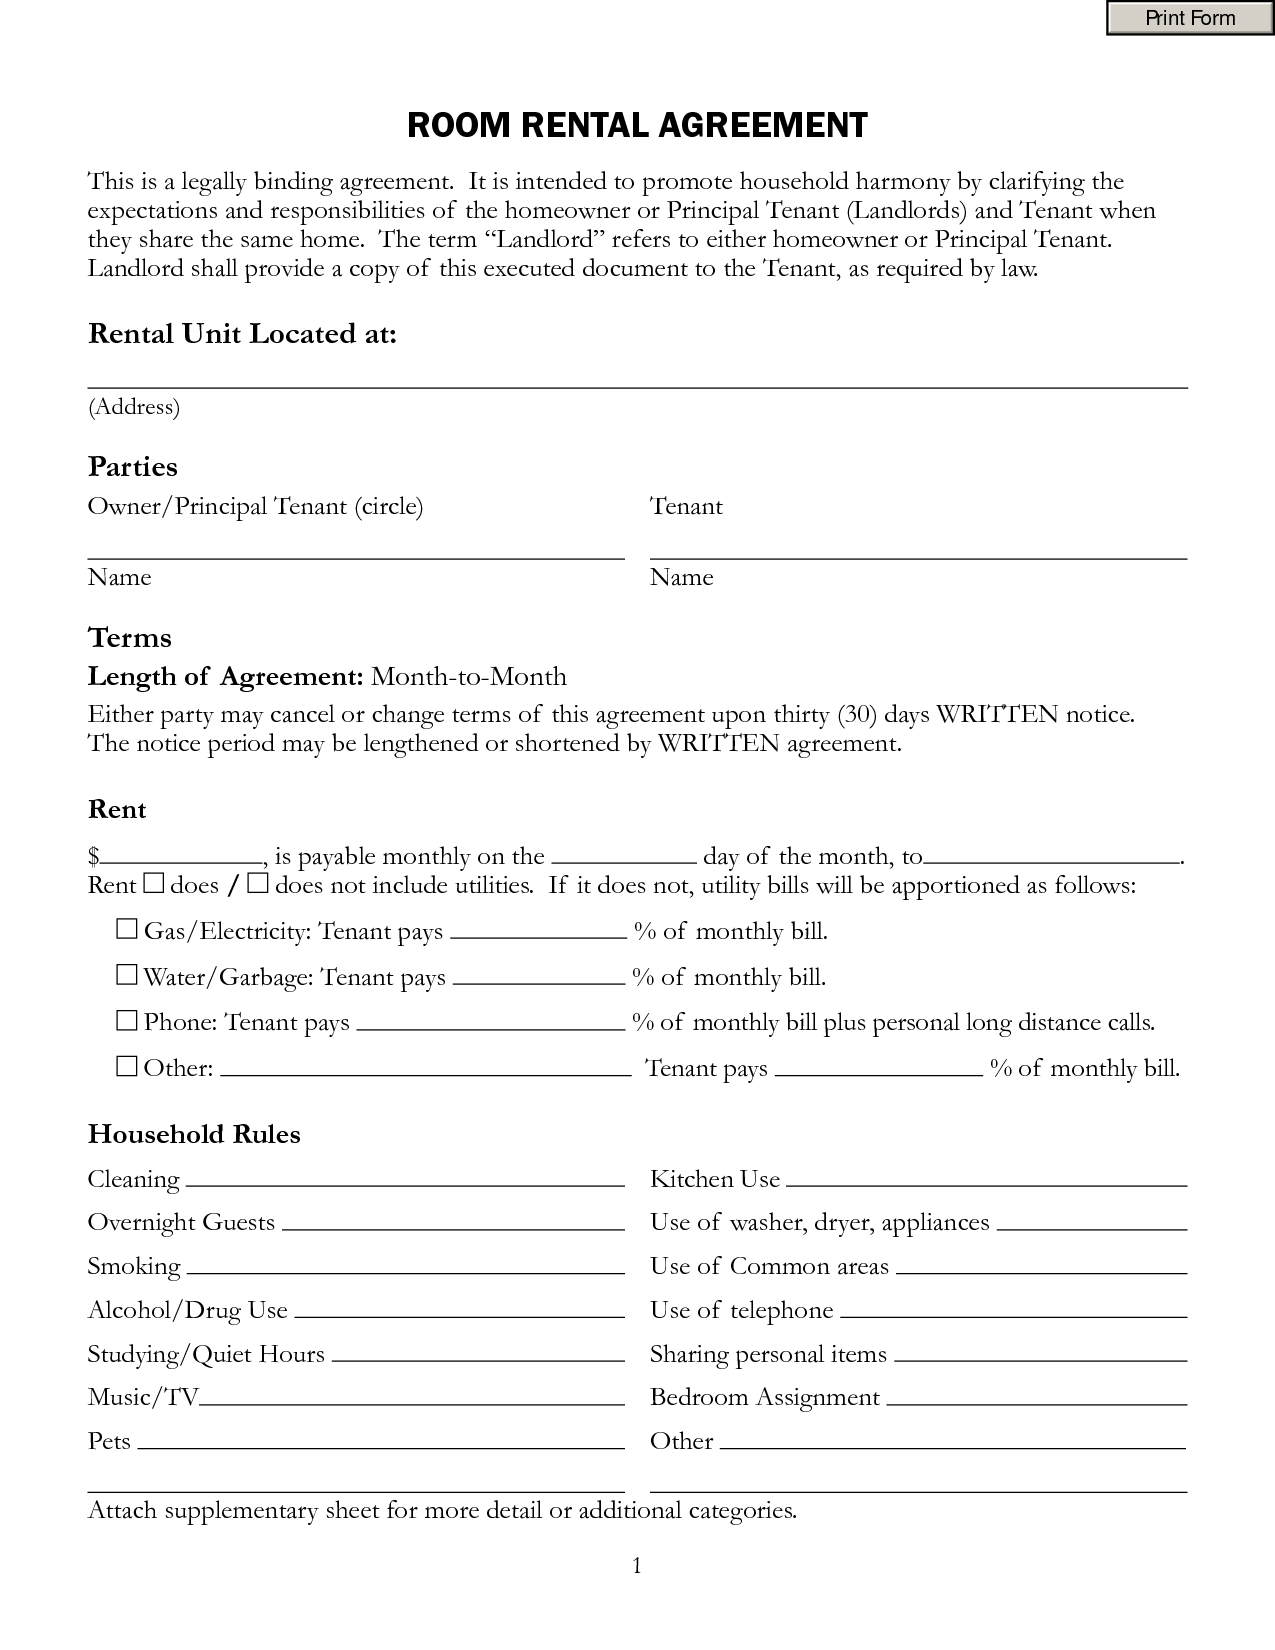 Tenant Application Form South Africa